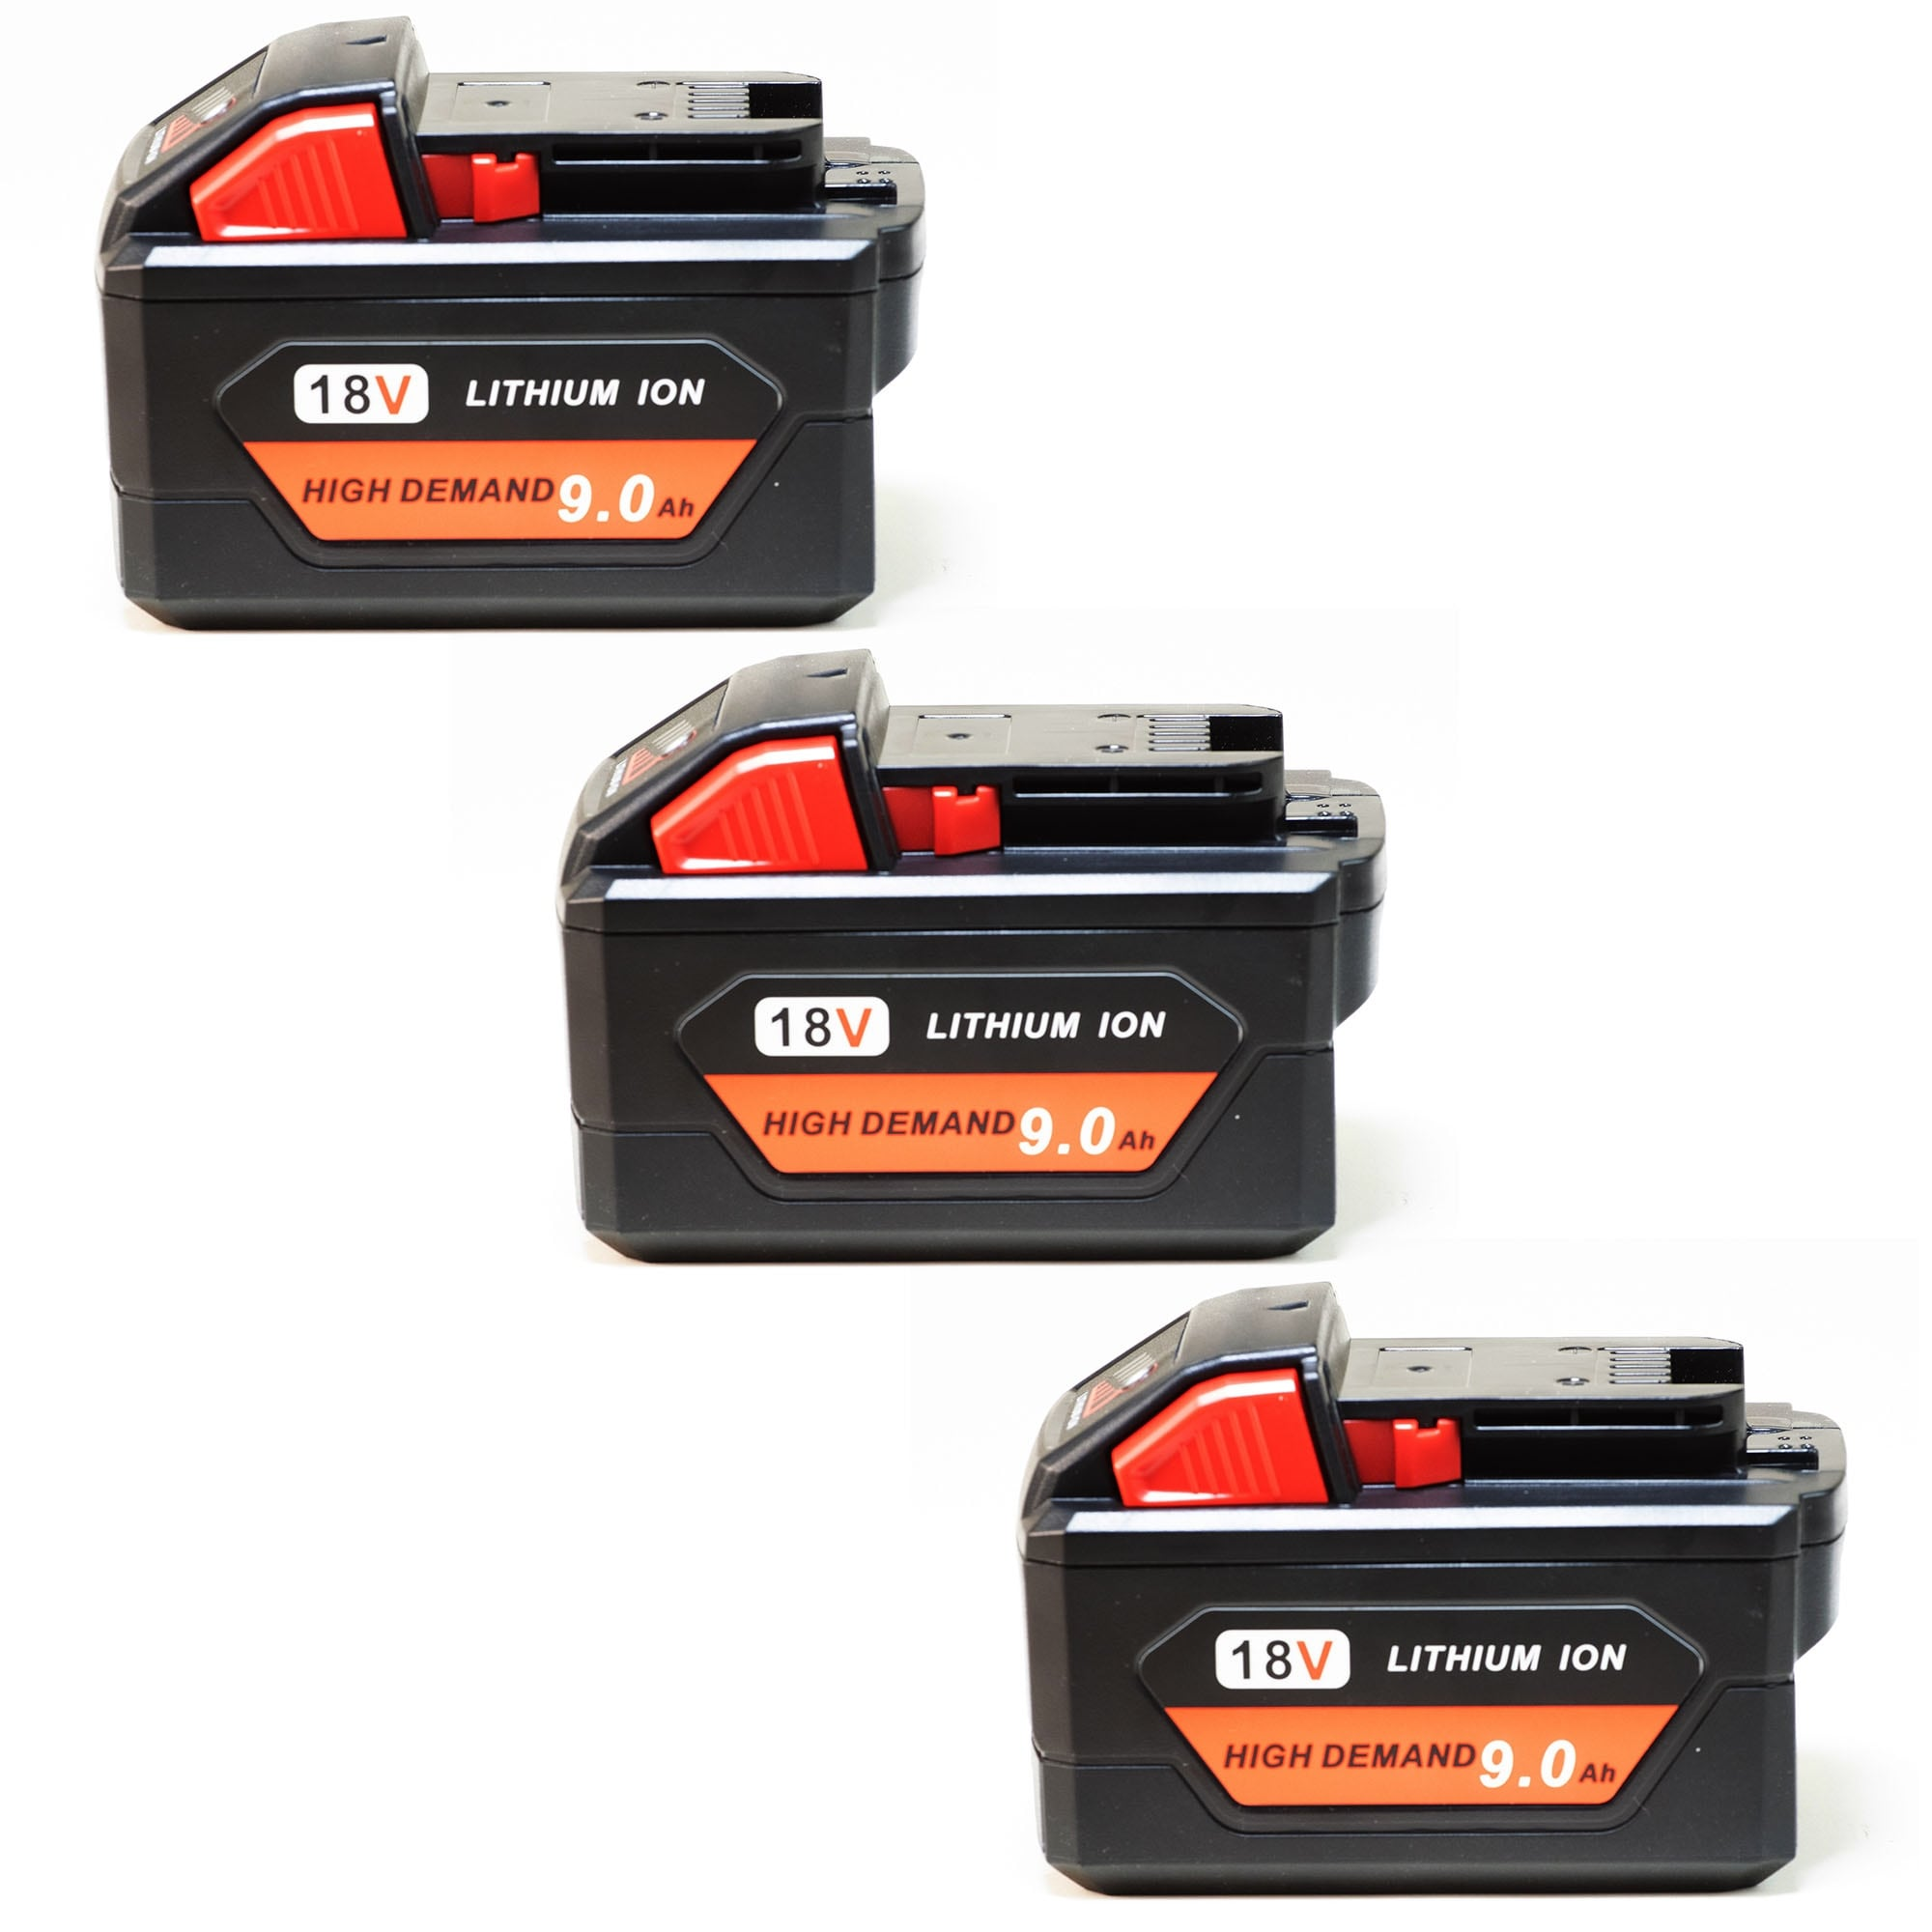 Replacement 9000mAh Battery for Milwaukee 48-11-1890 Models (3 Pk) -  Overstock